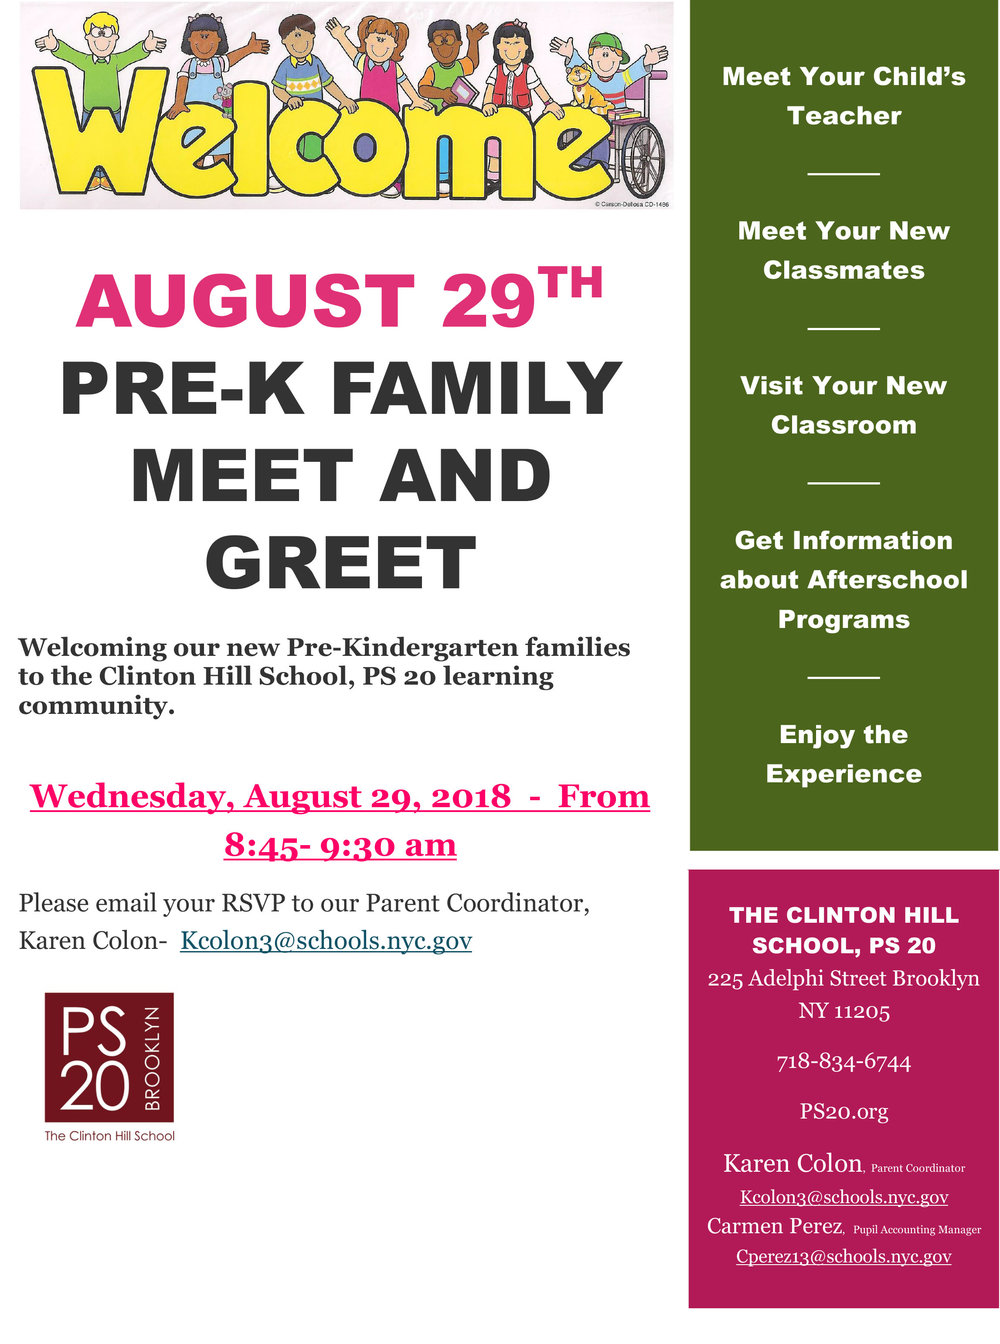 Pre-K Meet and Greet 2018.jpg